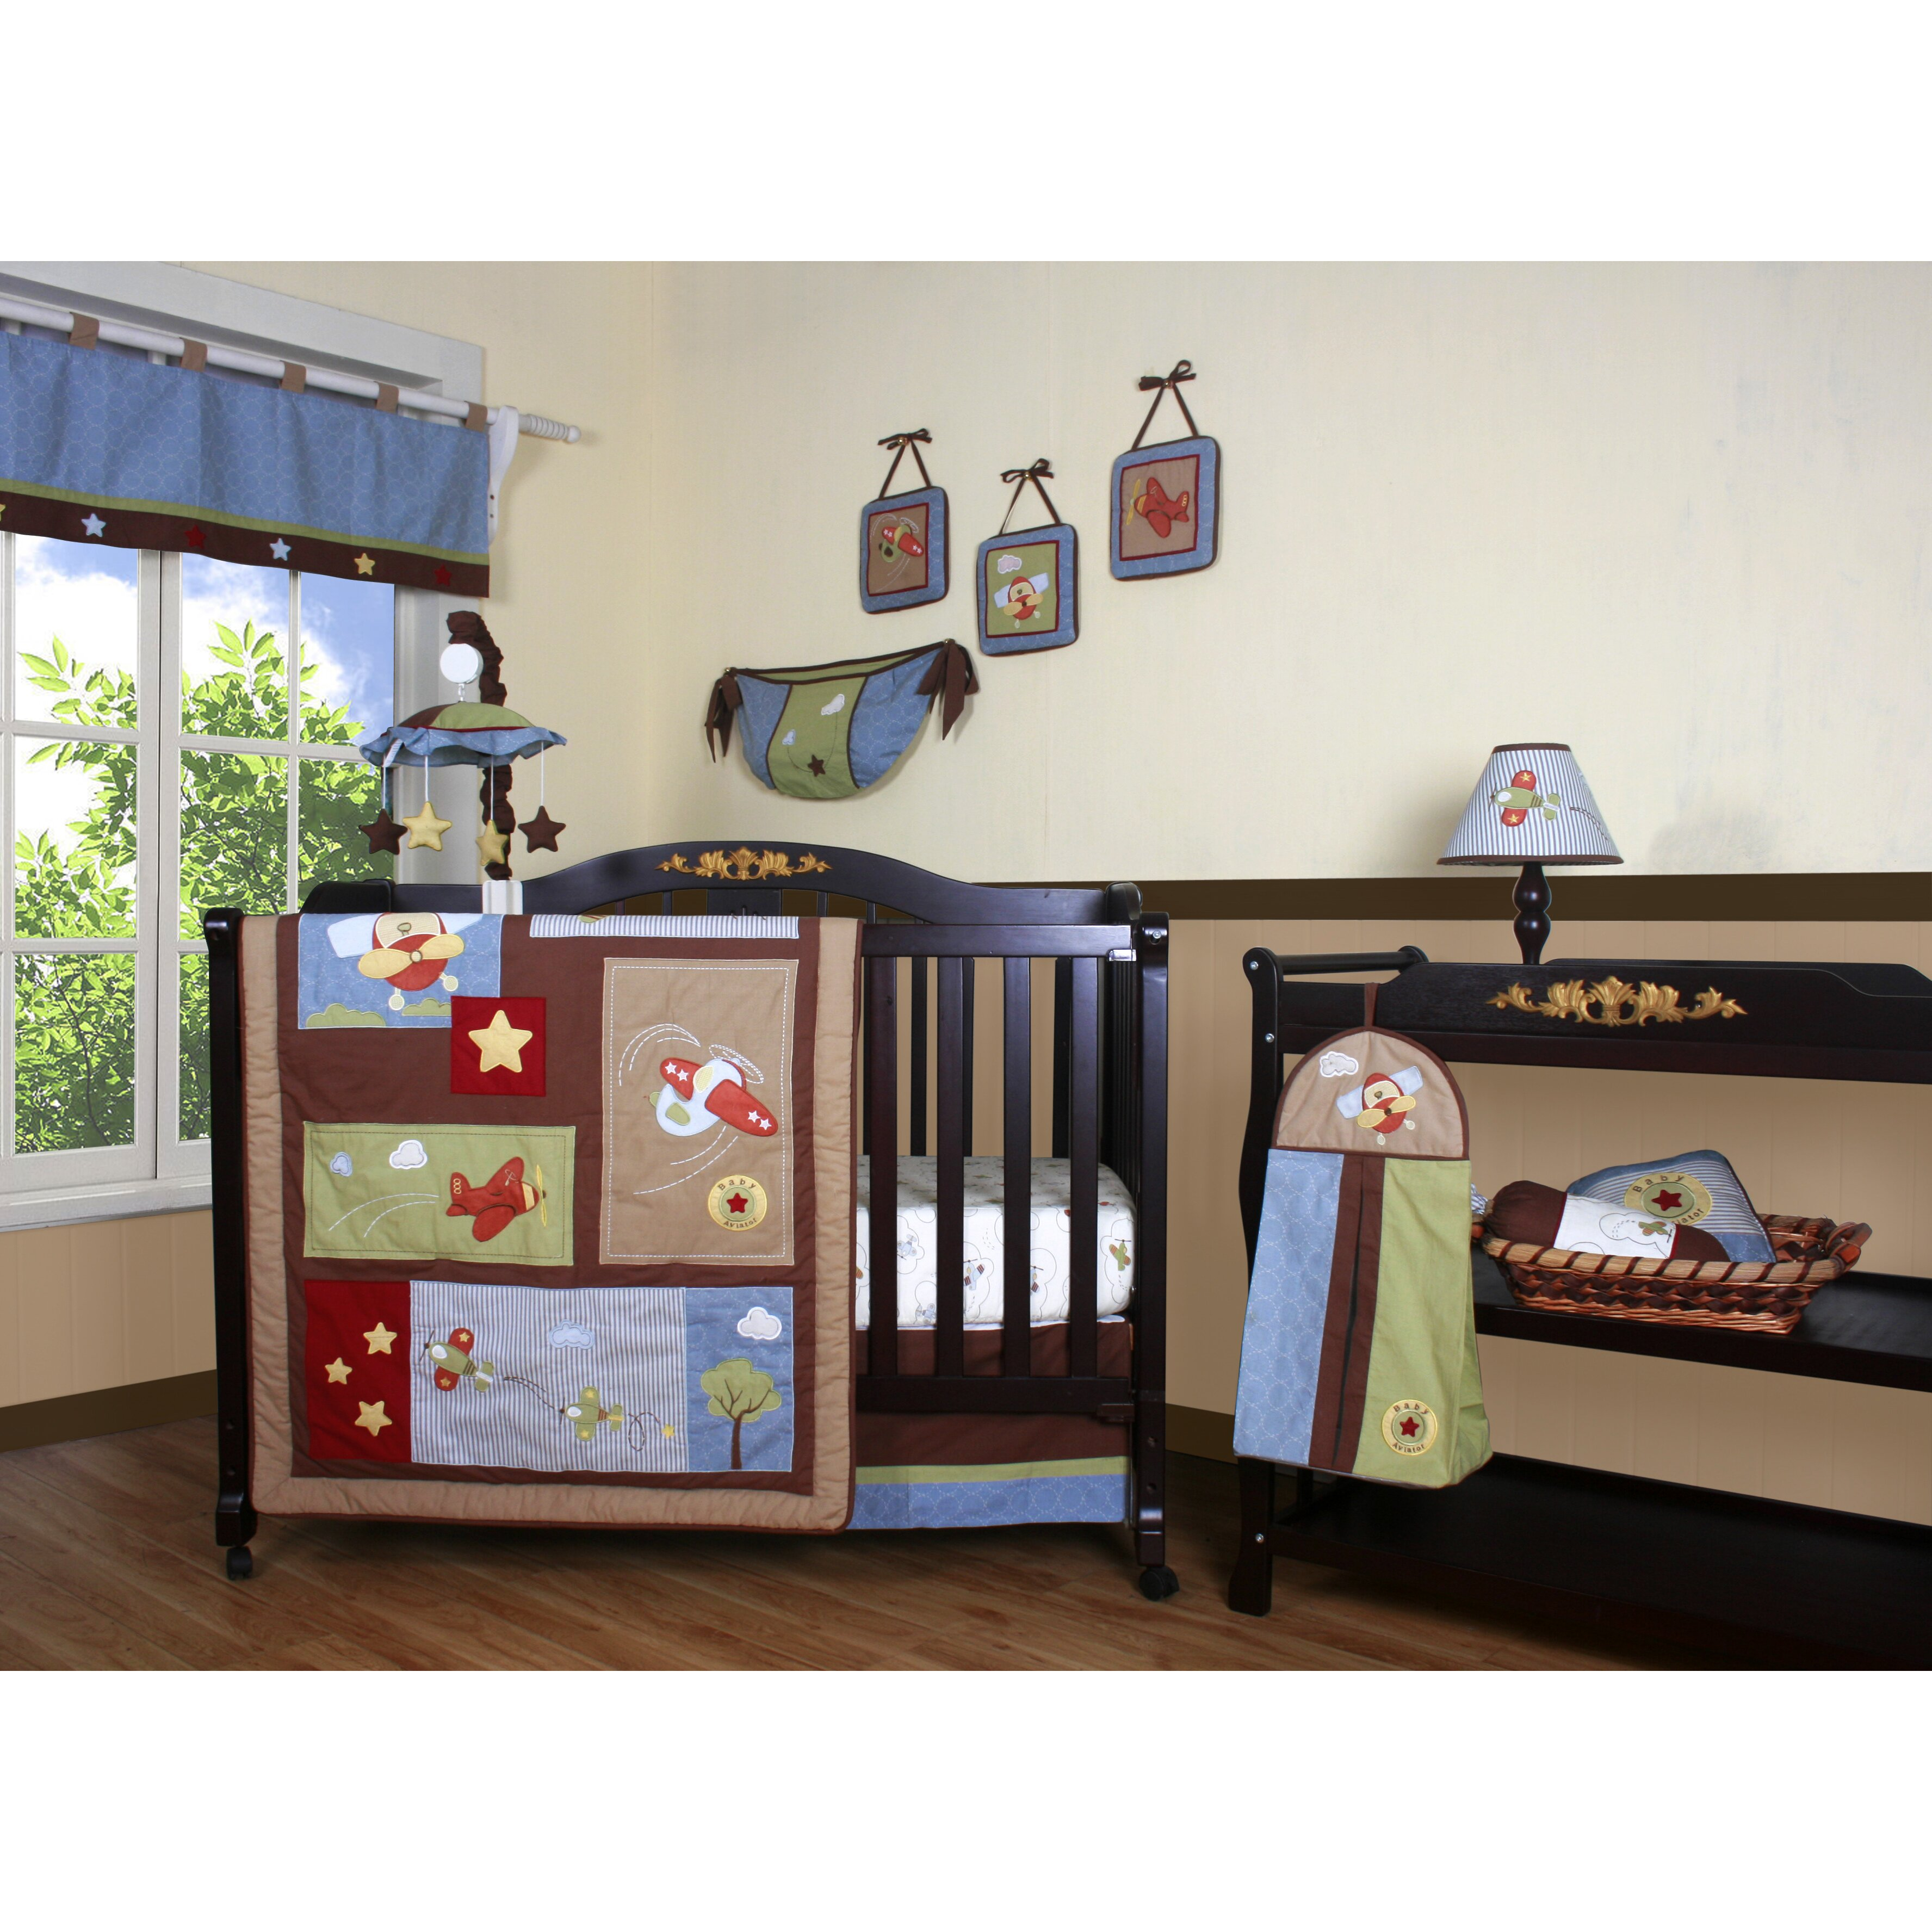 Geenny boutique airplane aviator 12 piece crib bedding set reviews wayfair - Airplane baby bedding sets ...